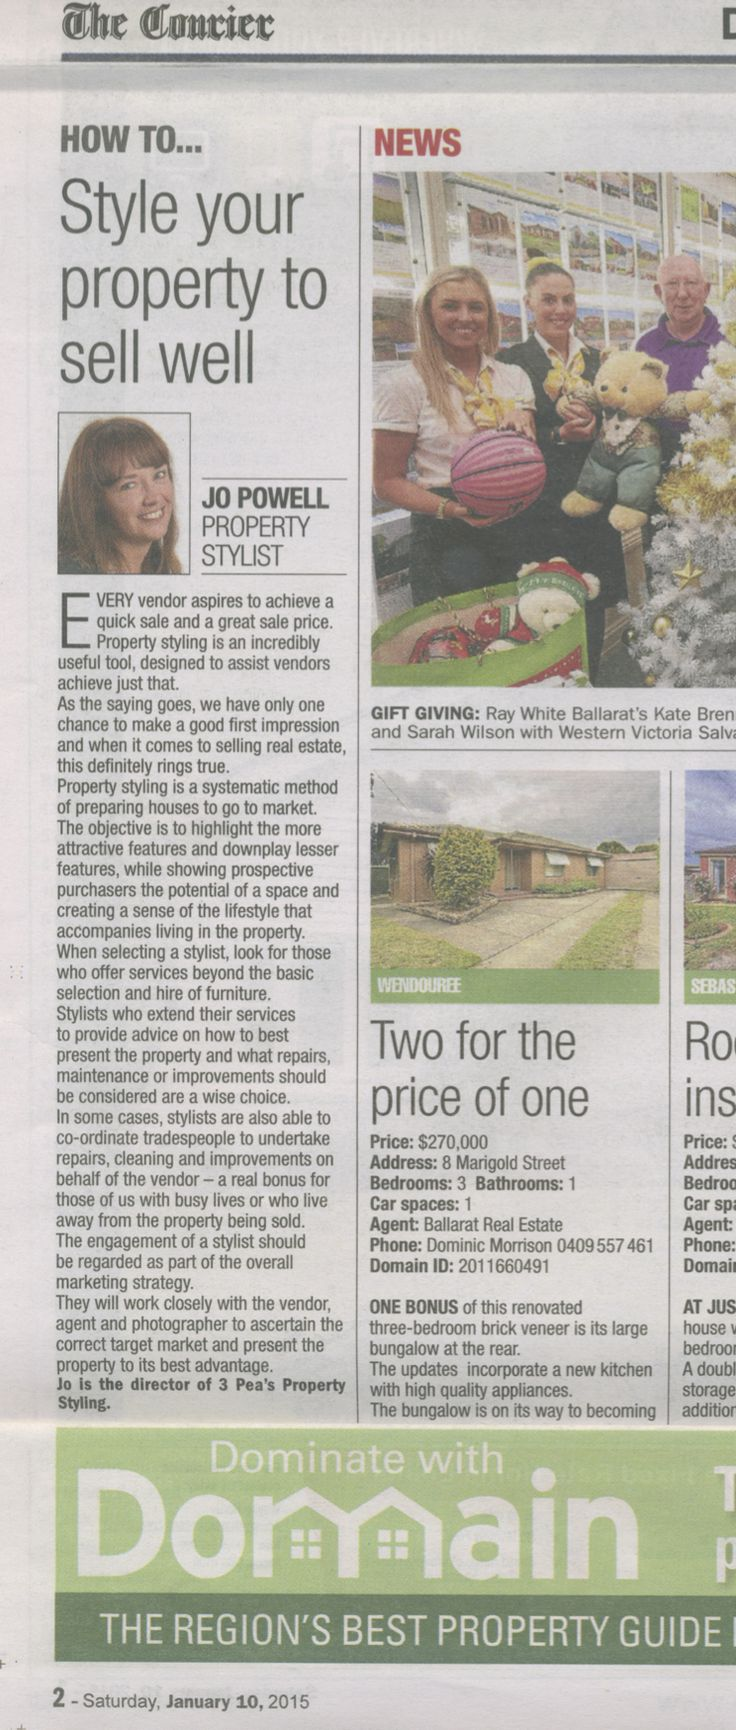 How to...Style your property to sell well. Domain.com.au, The Courier, 10 January 2015.